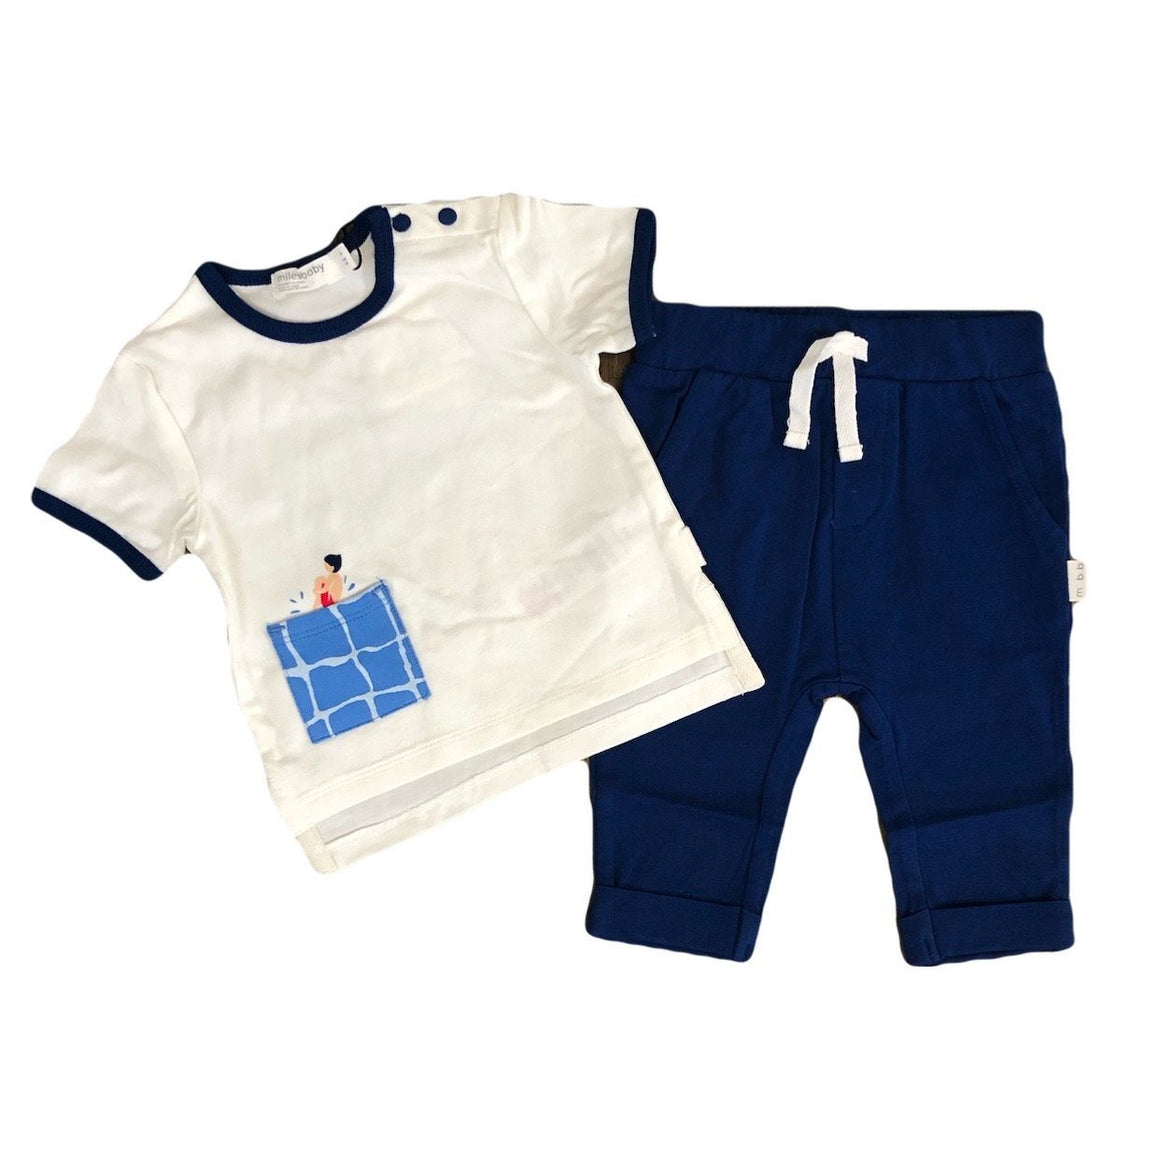 19SM30K866 Miles Baby Off White Pool Jumper 2 Piece Set Miles Baby